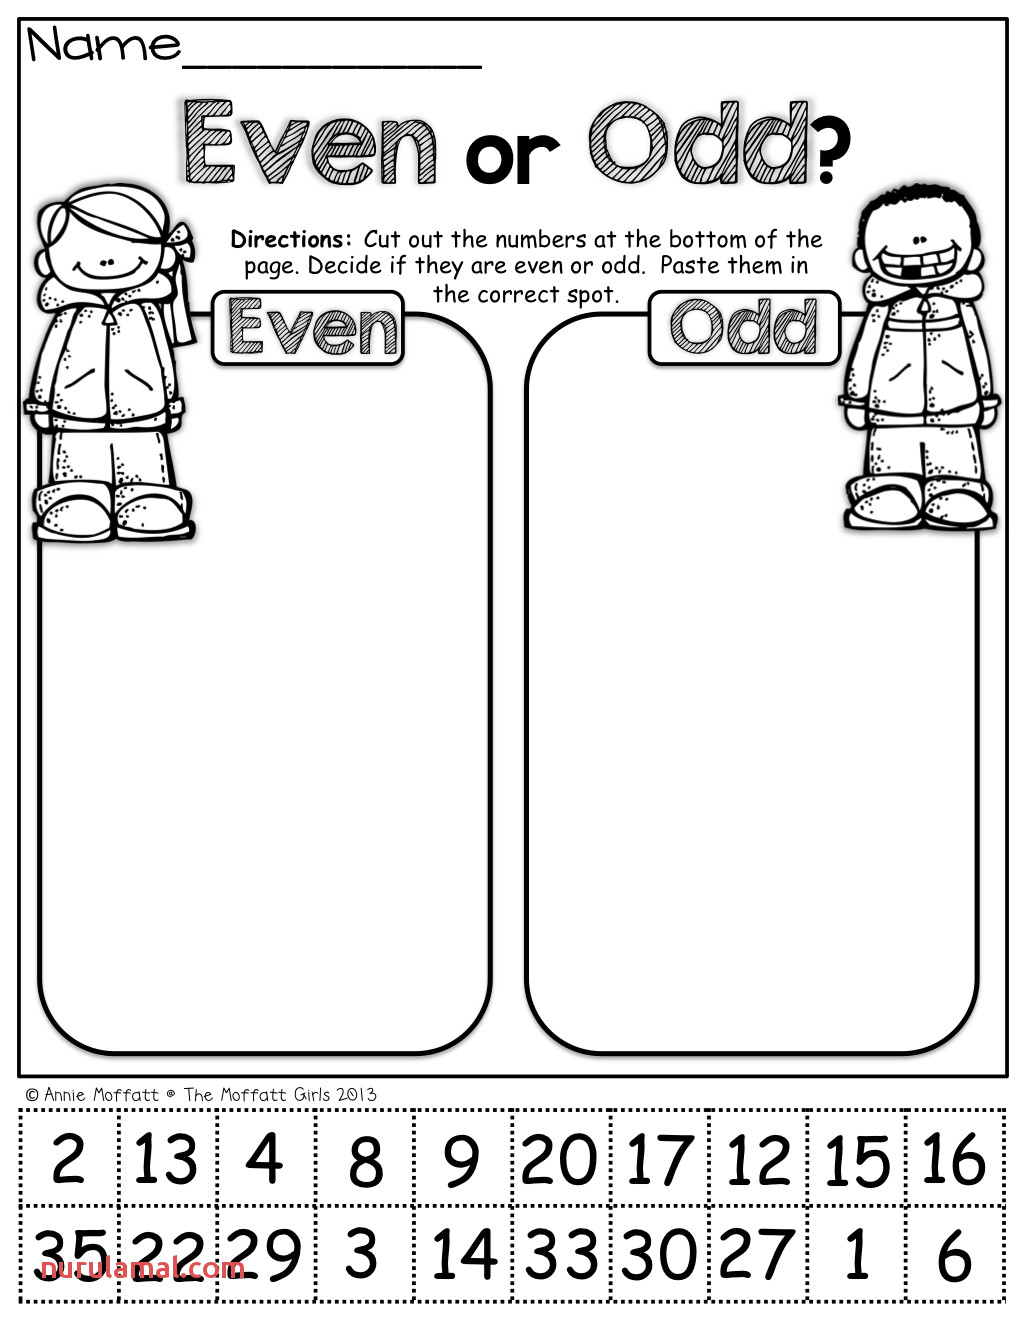 Odd And Even Worksheet For Kids